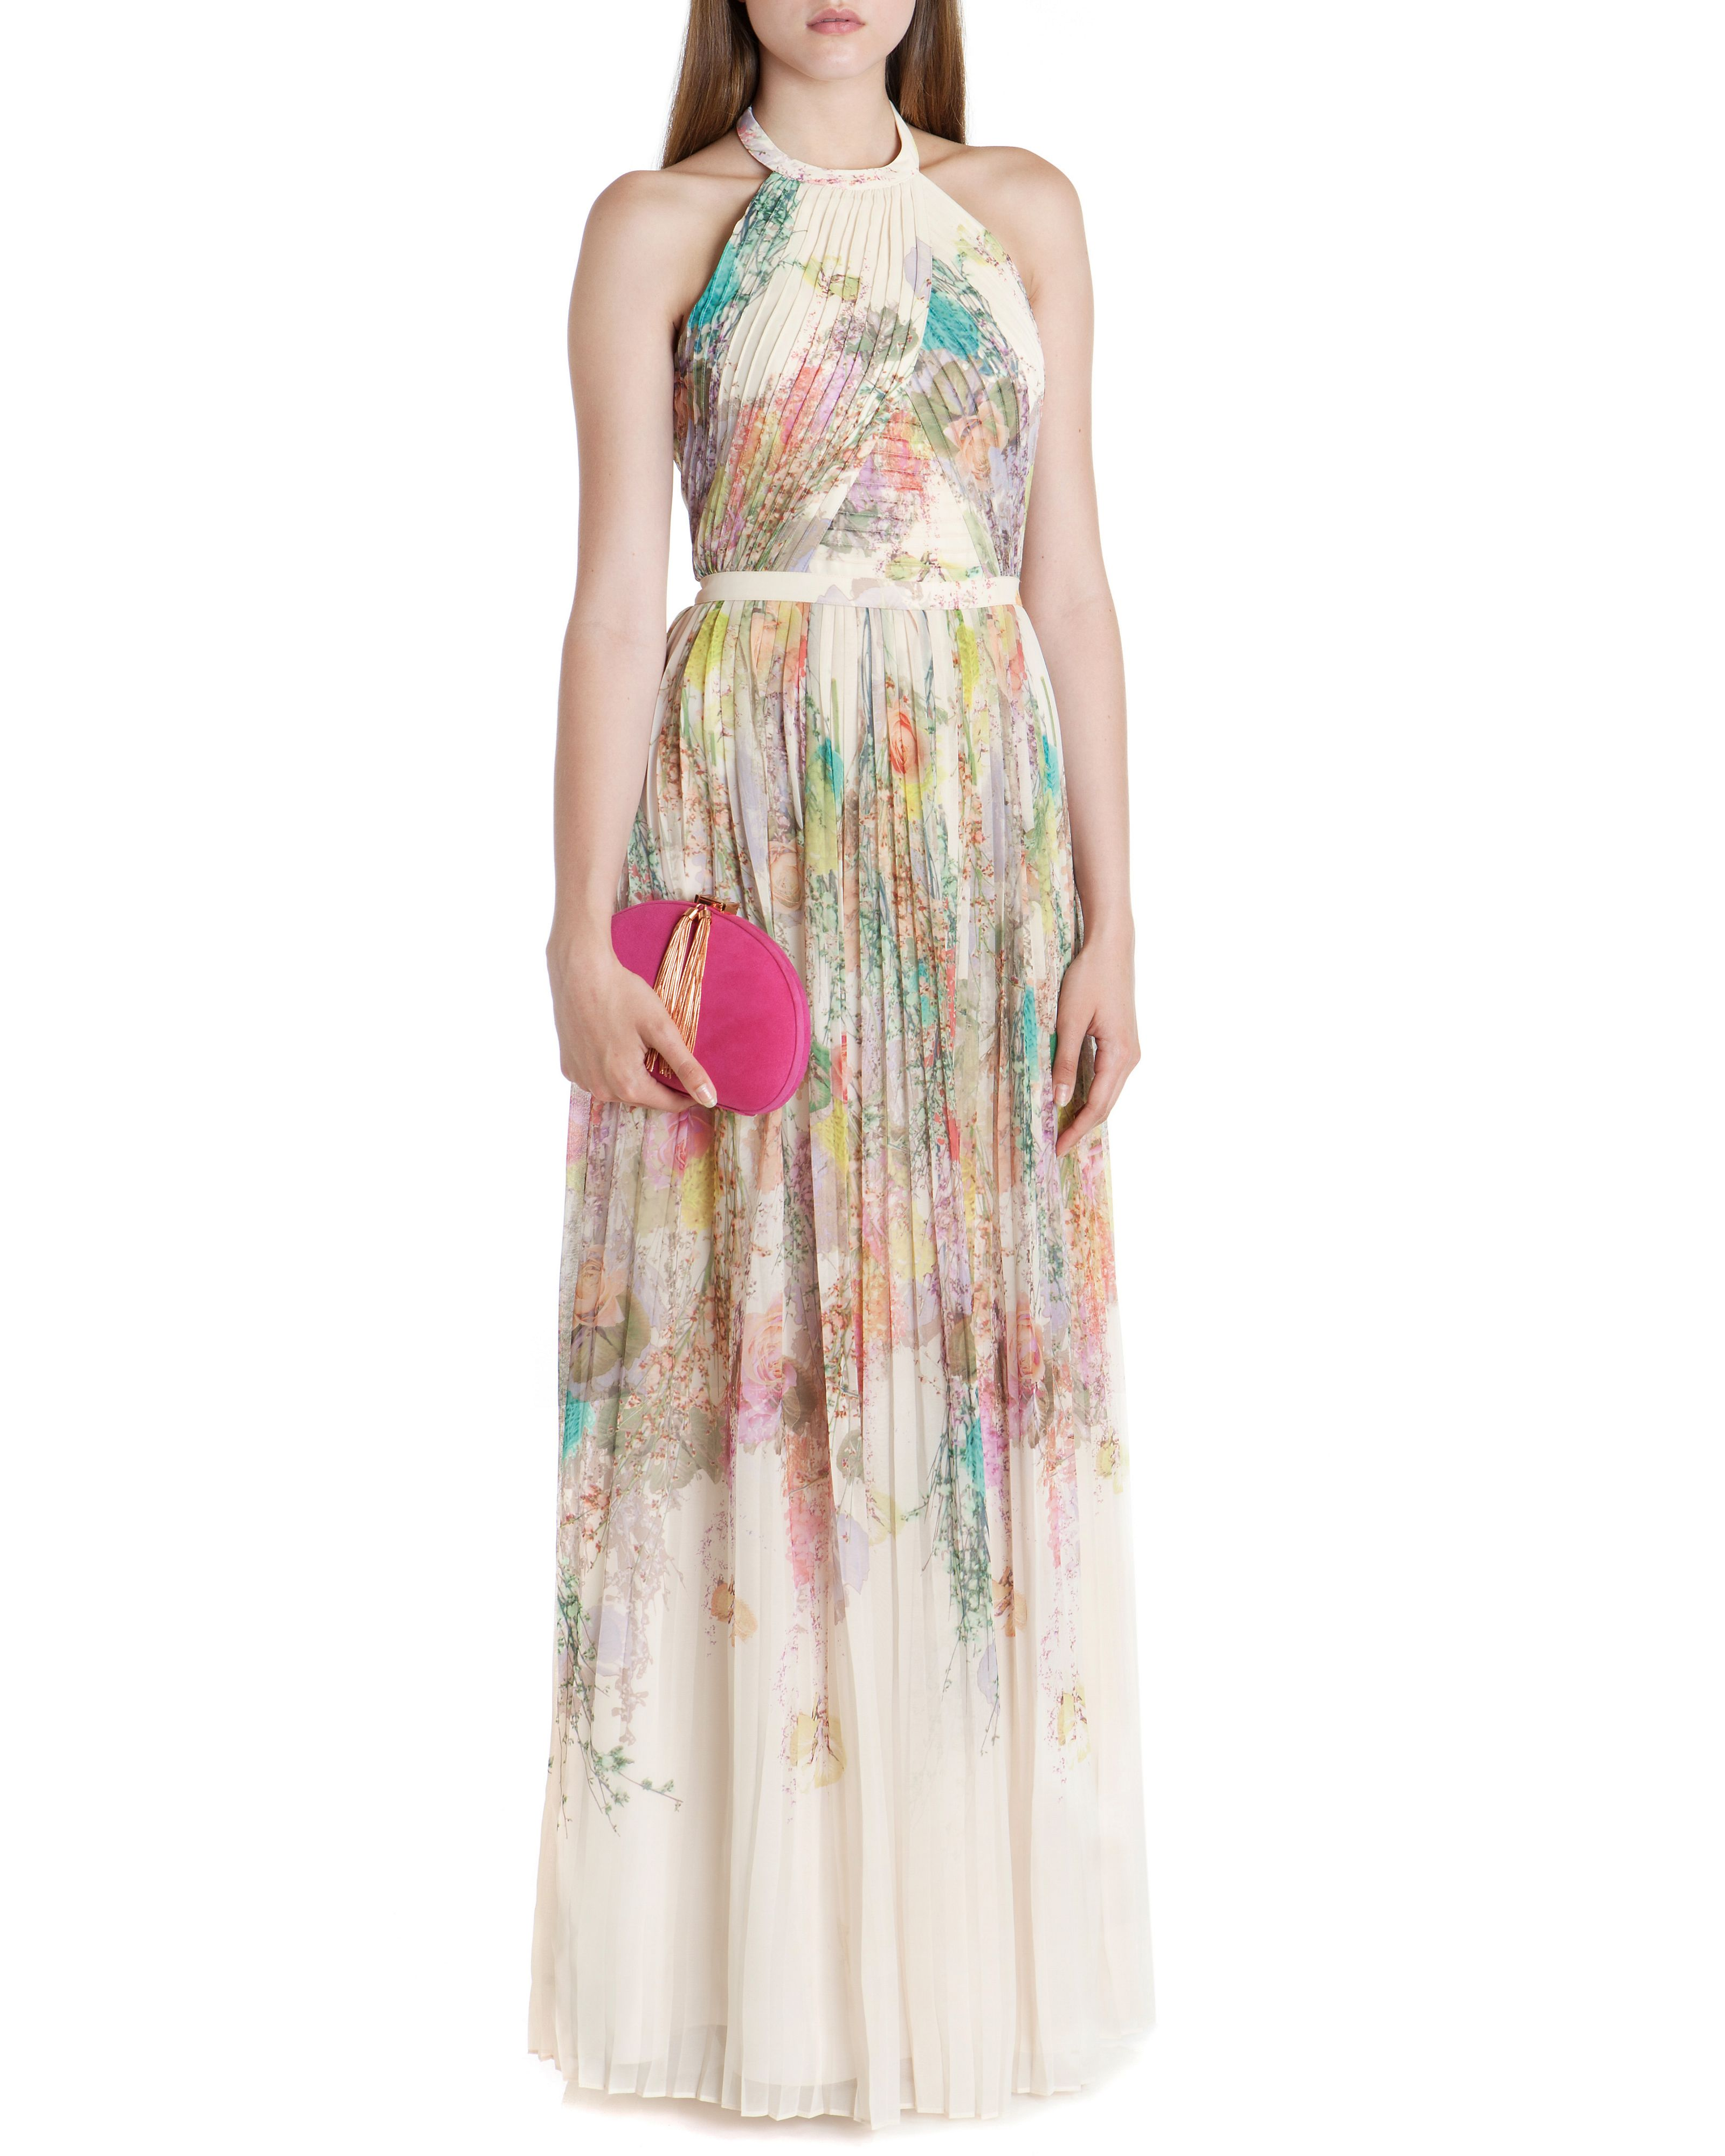 Pearpa wispy meadow maxi dress